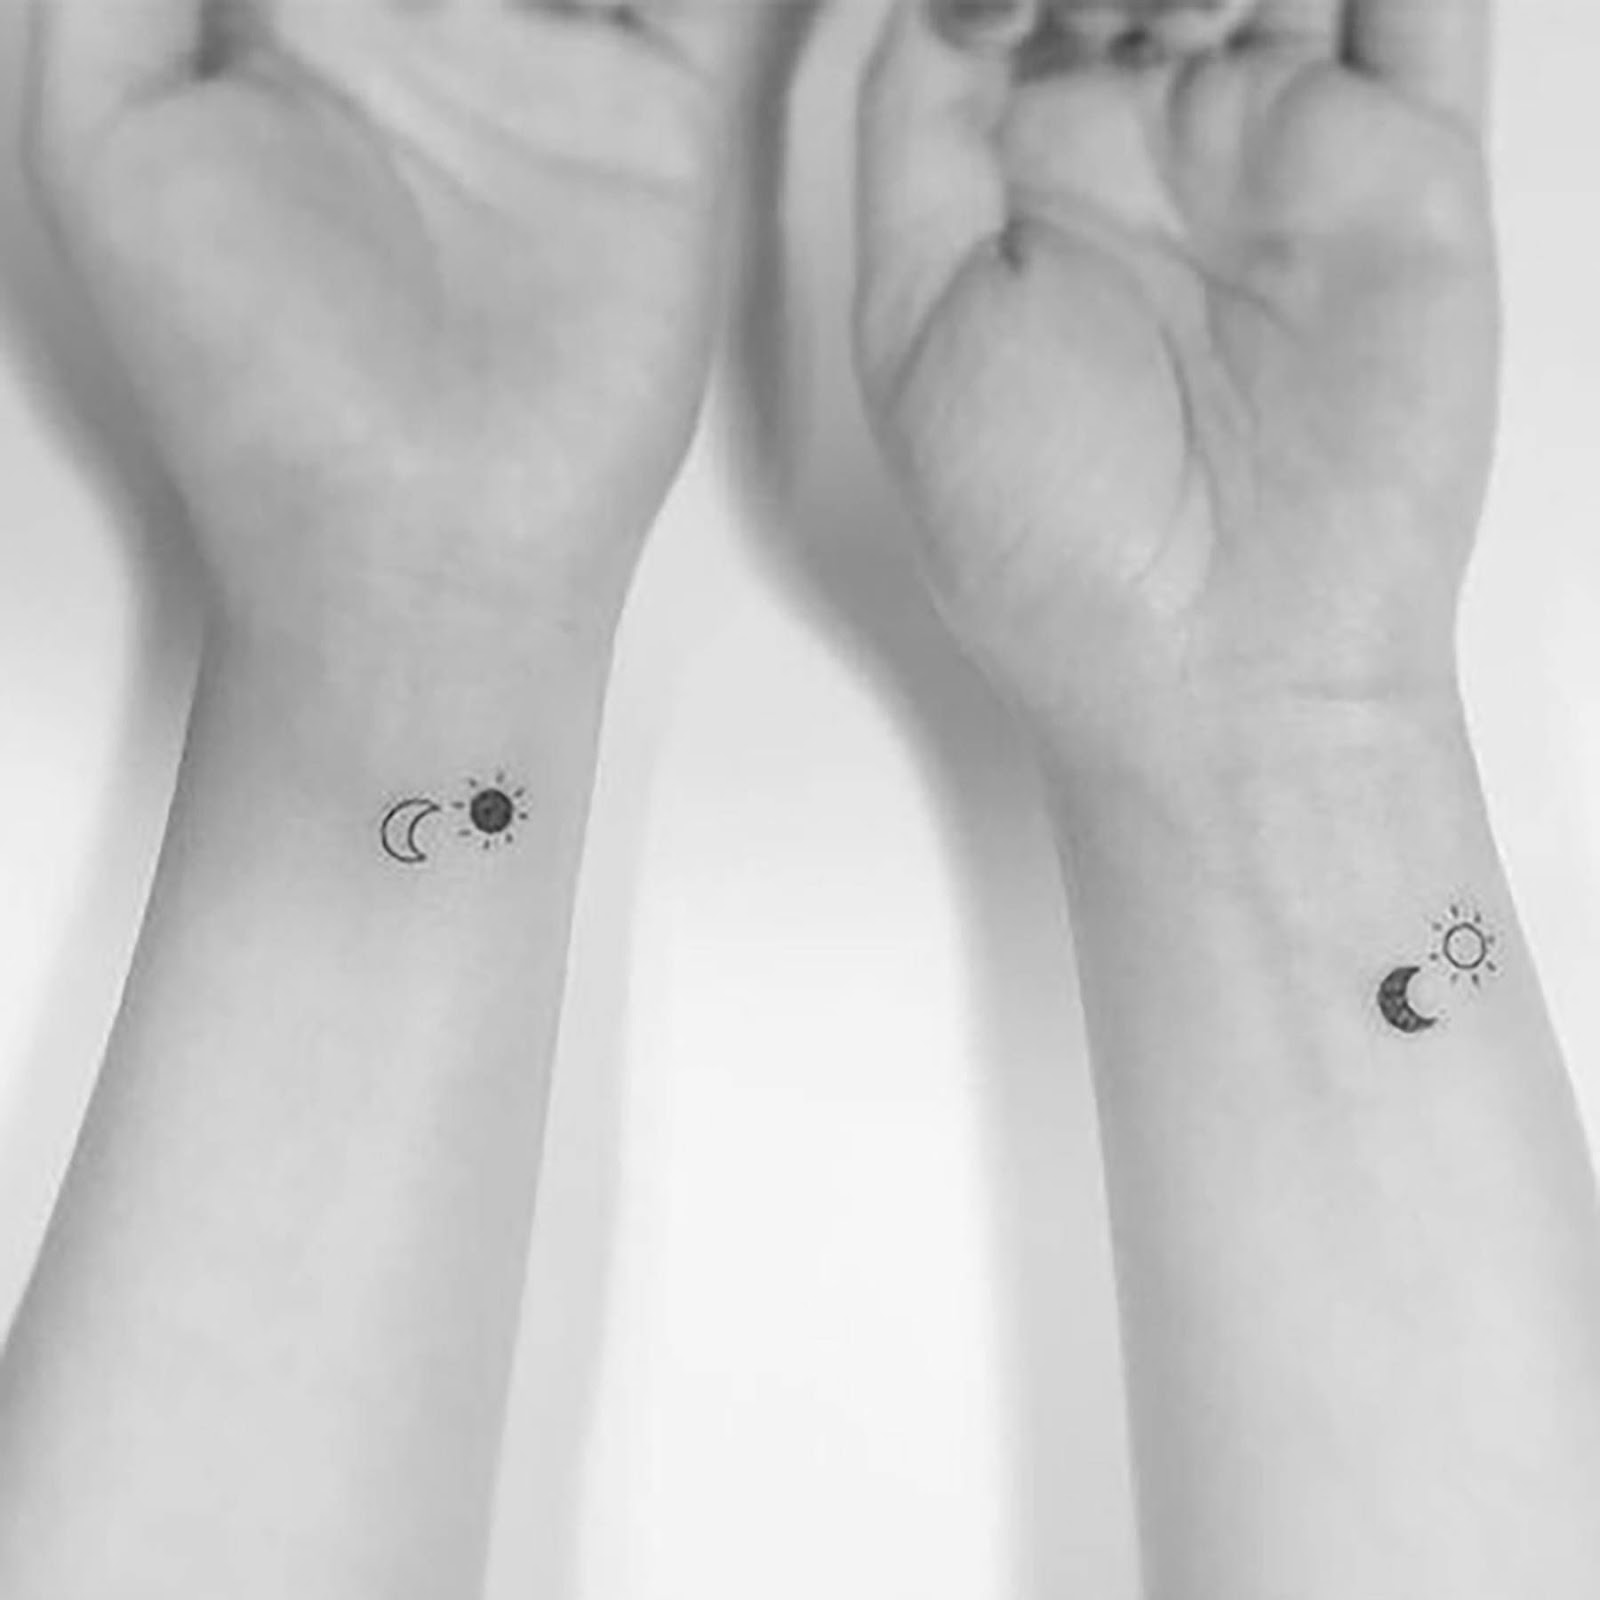 Girl Best Friend Matching Tattoos (2)